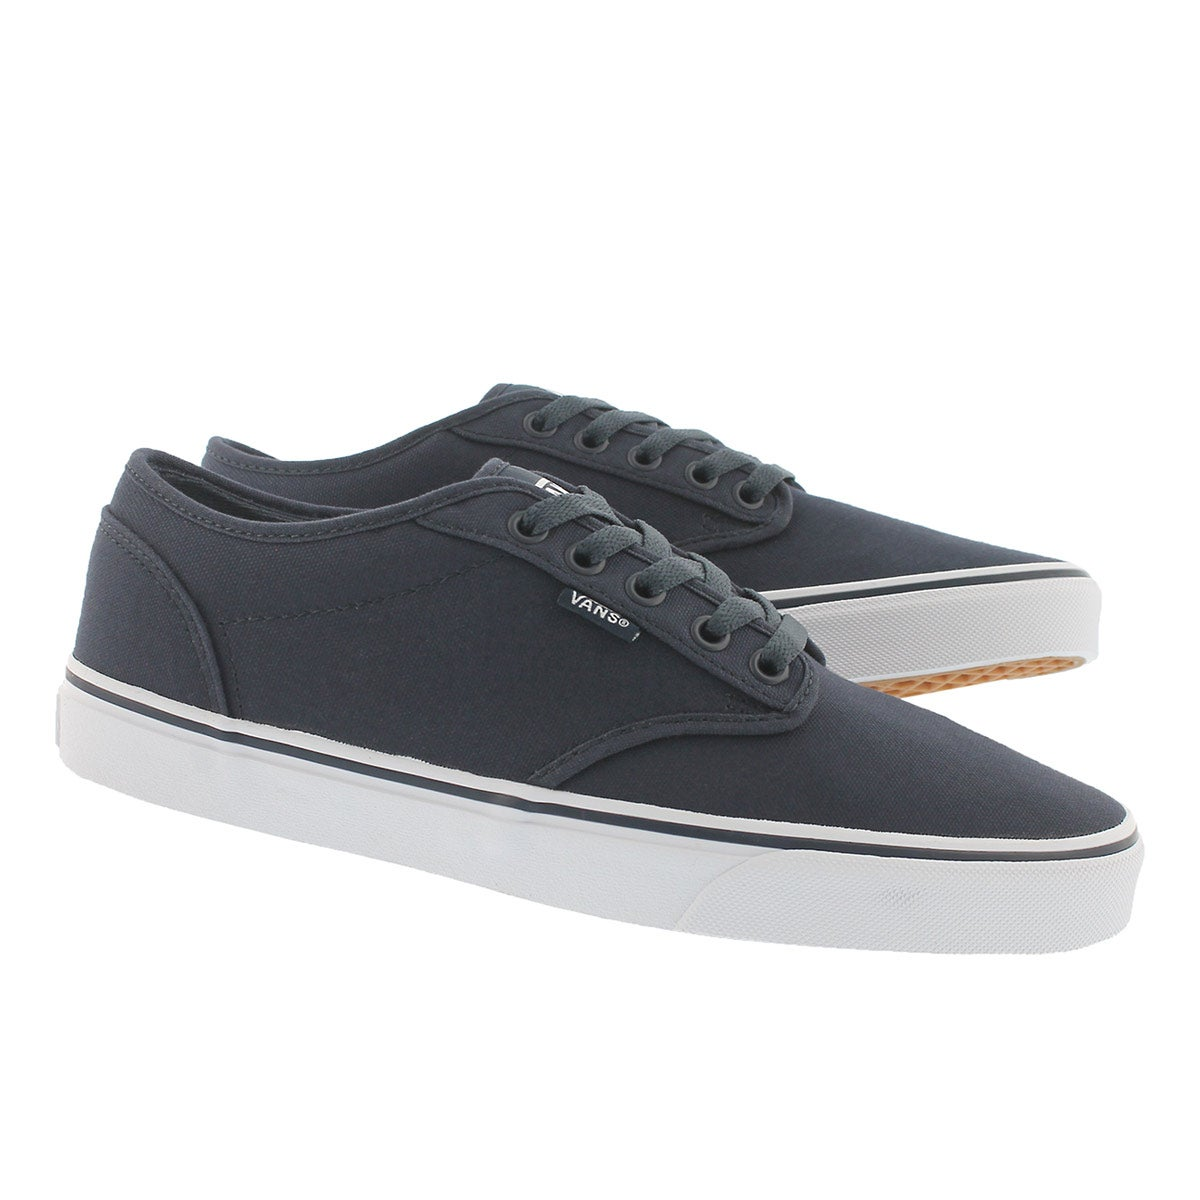 Mns Atwood navy canvas laceup sneaker